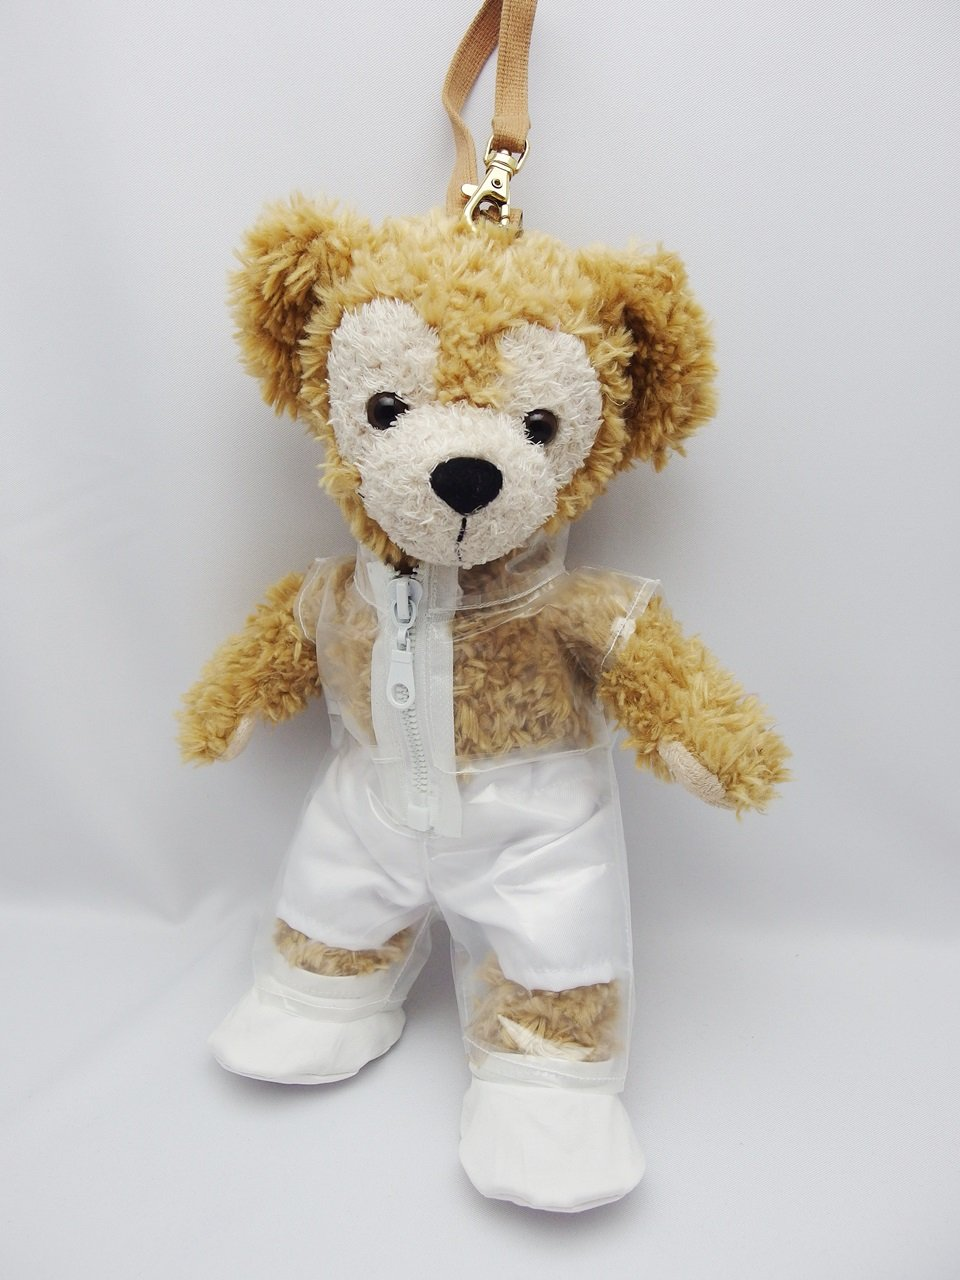 D-cute pouch stuffed Duffy costume cost duffy clothing am82 by D-cute